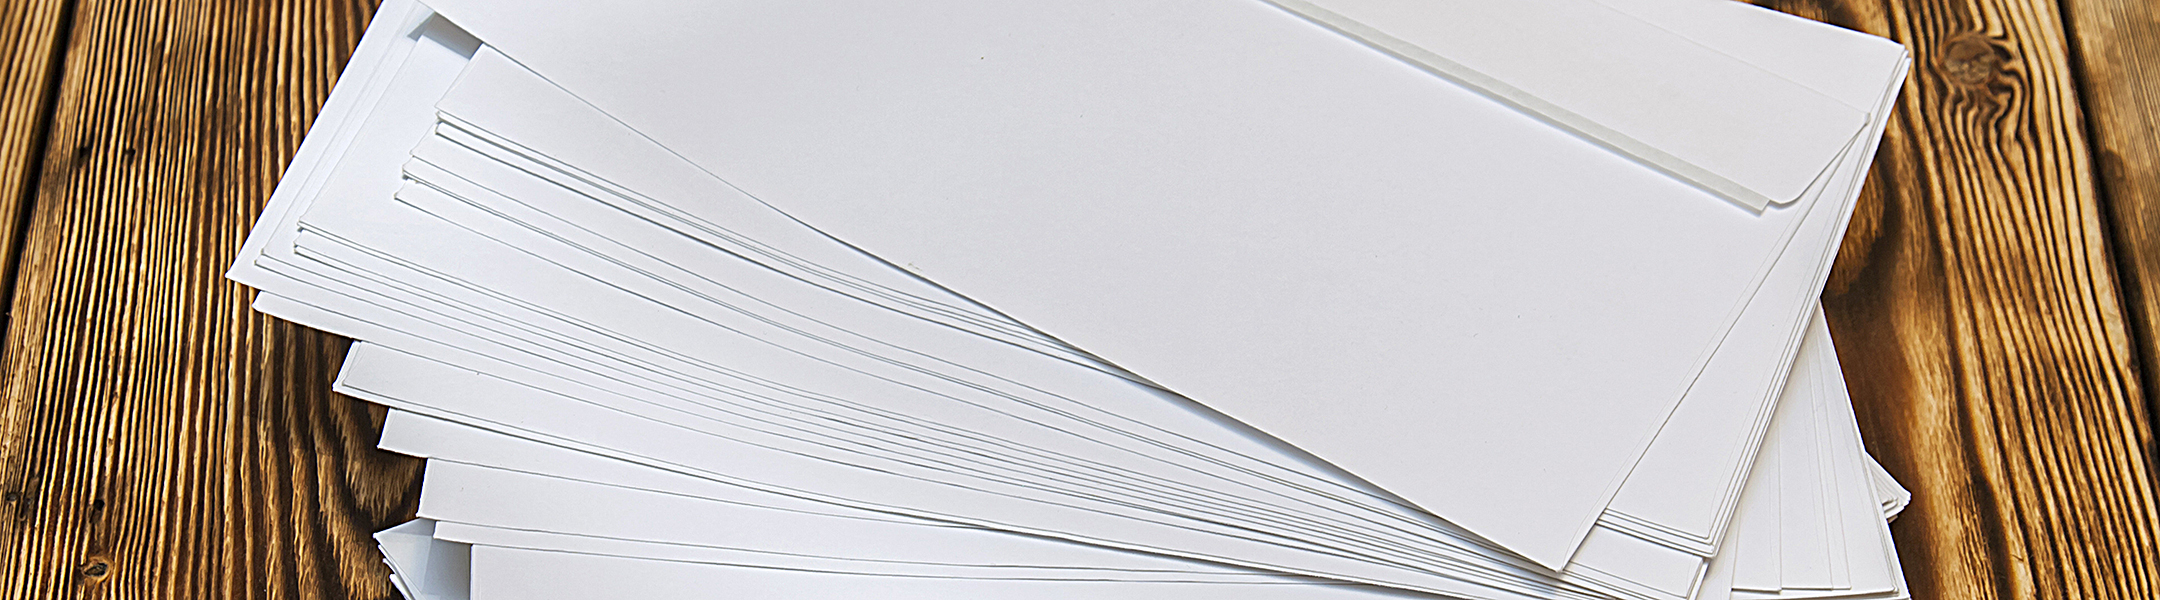 A stack of envelopes made with Domtar White Wove Envelope paper